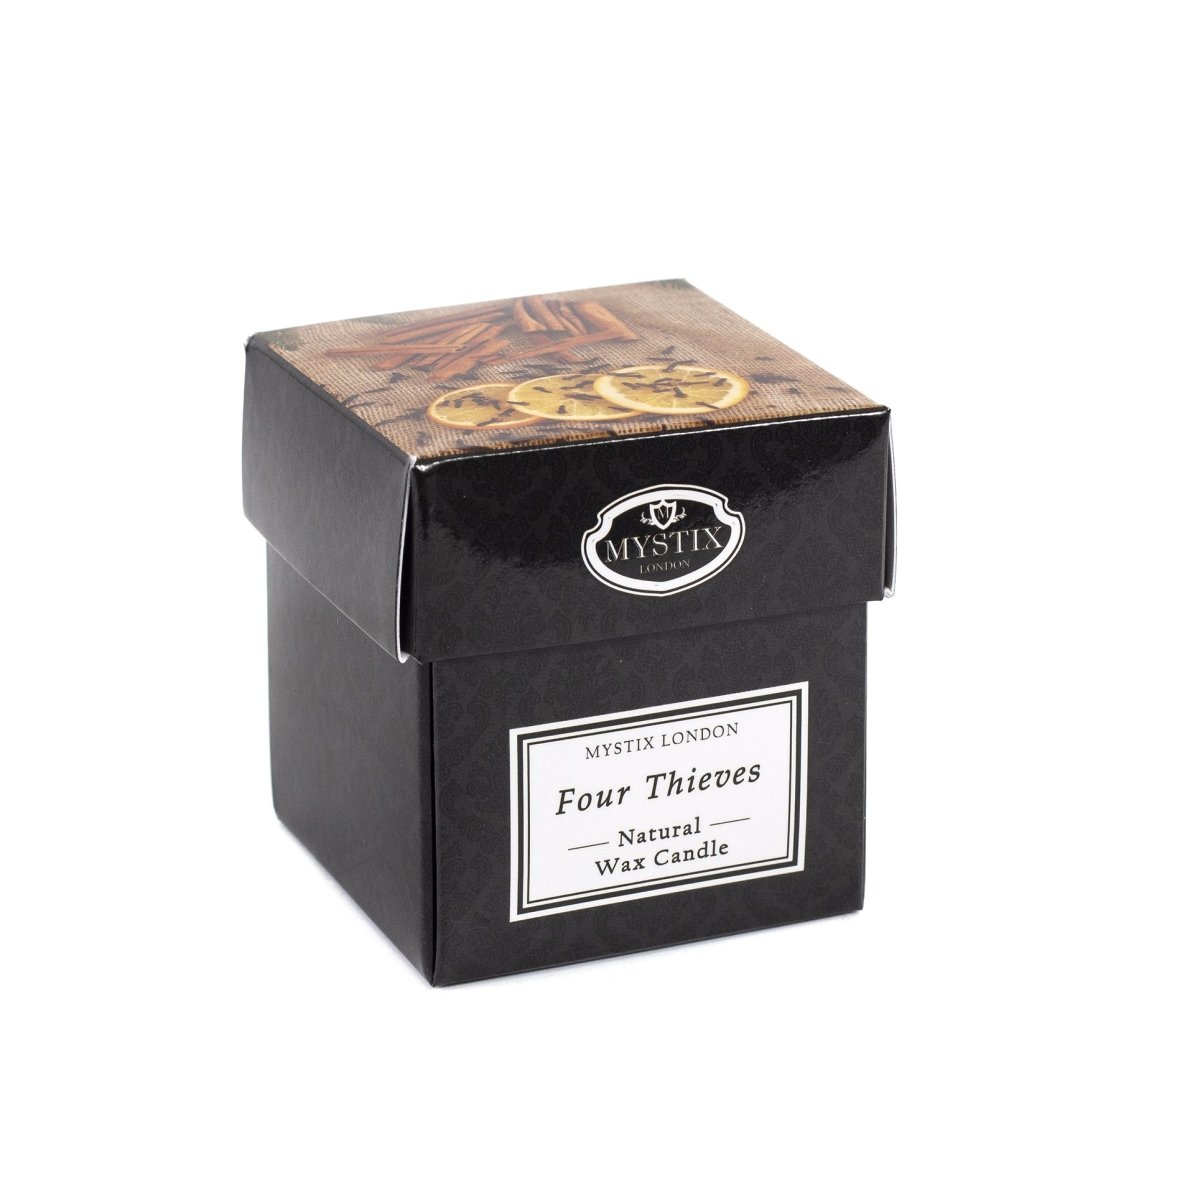 Four Thieves Scented Candle - Mystic Moments UK